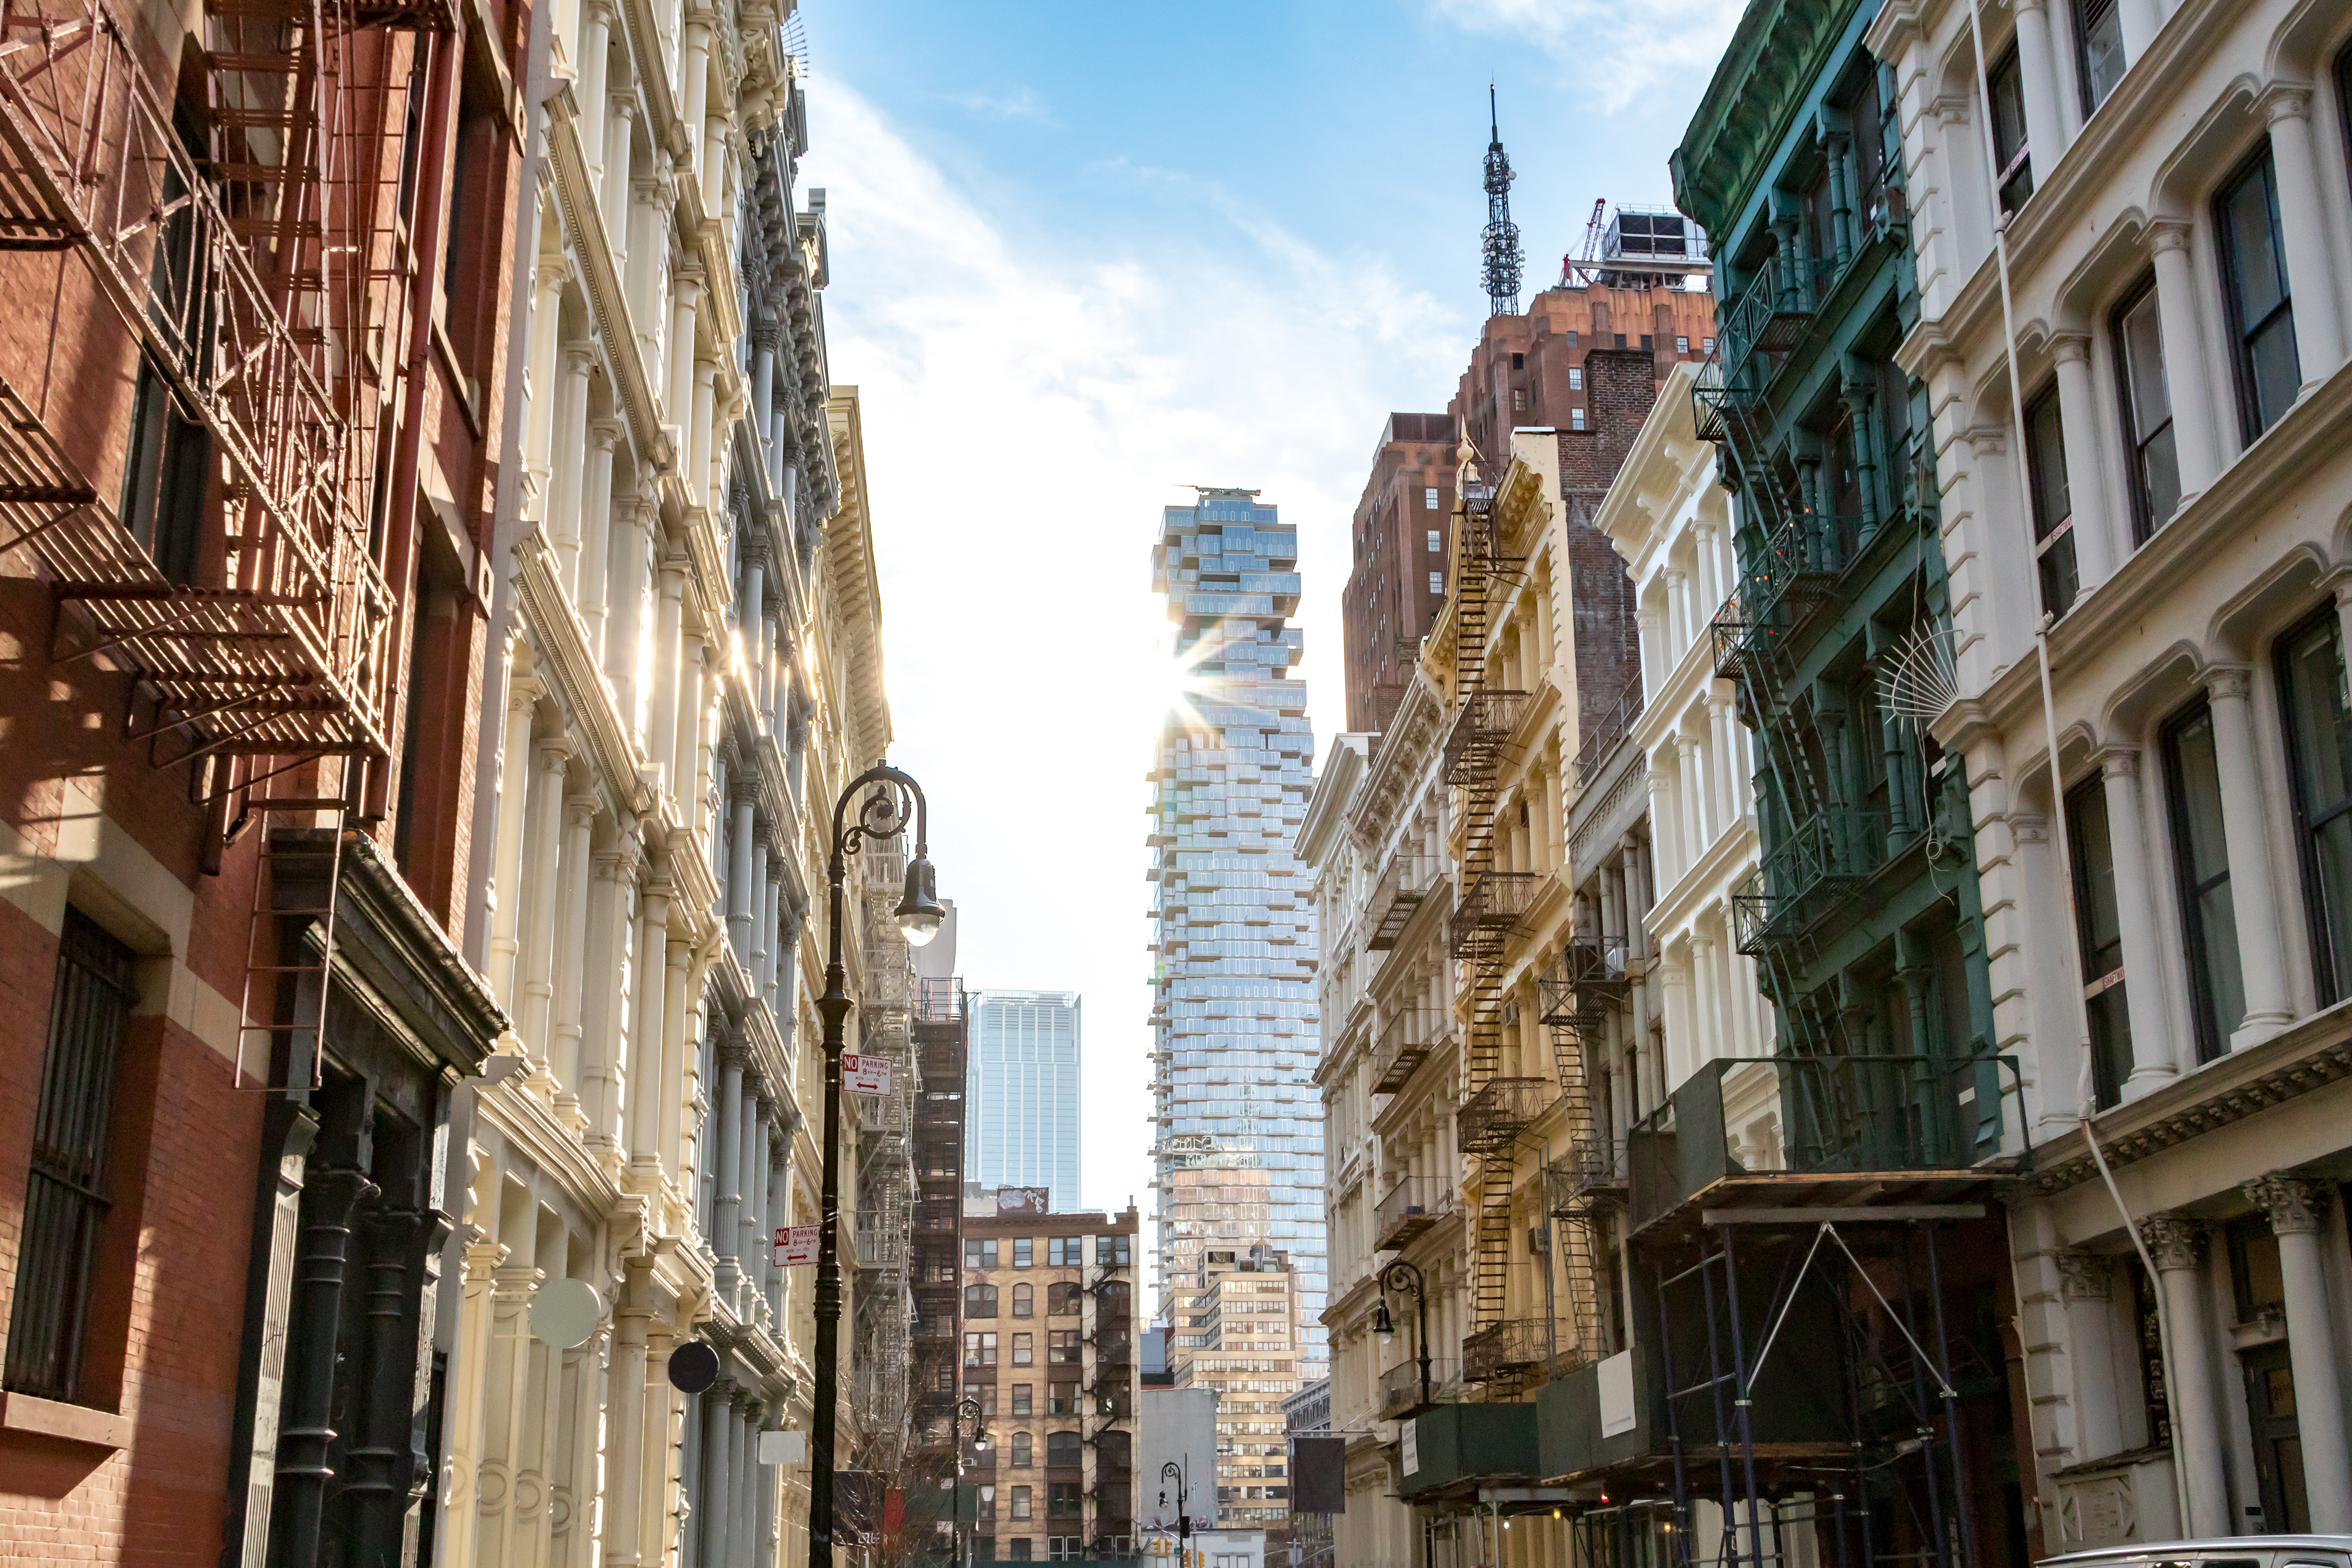 33 things to see and do in New York